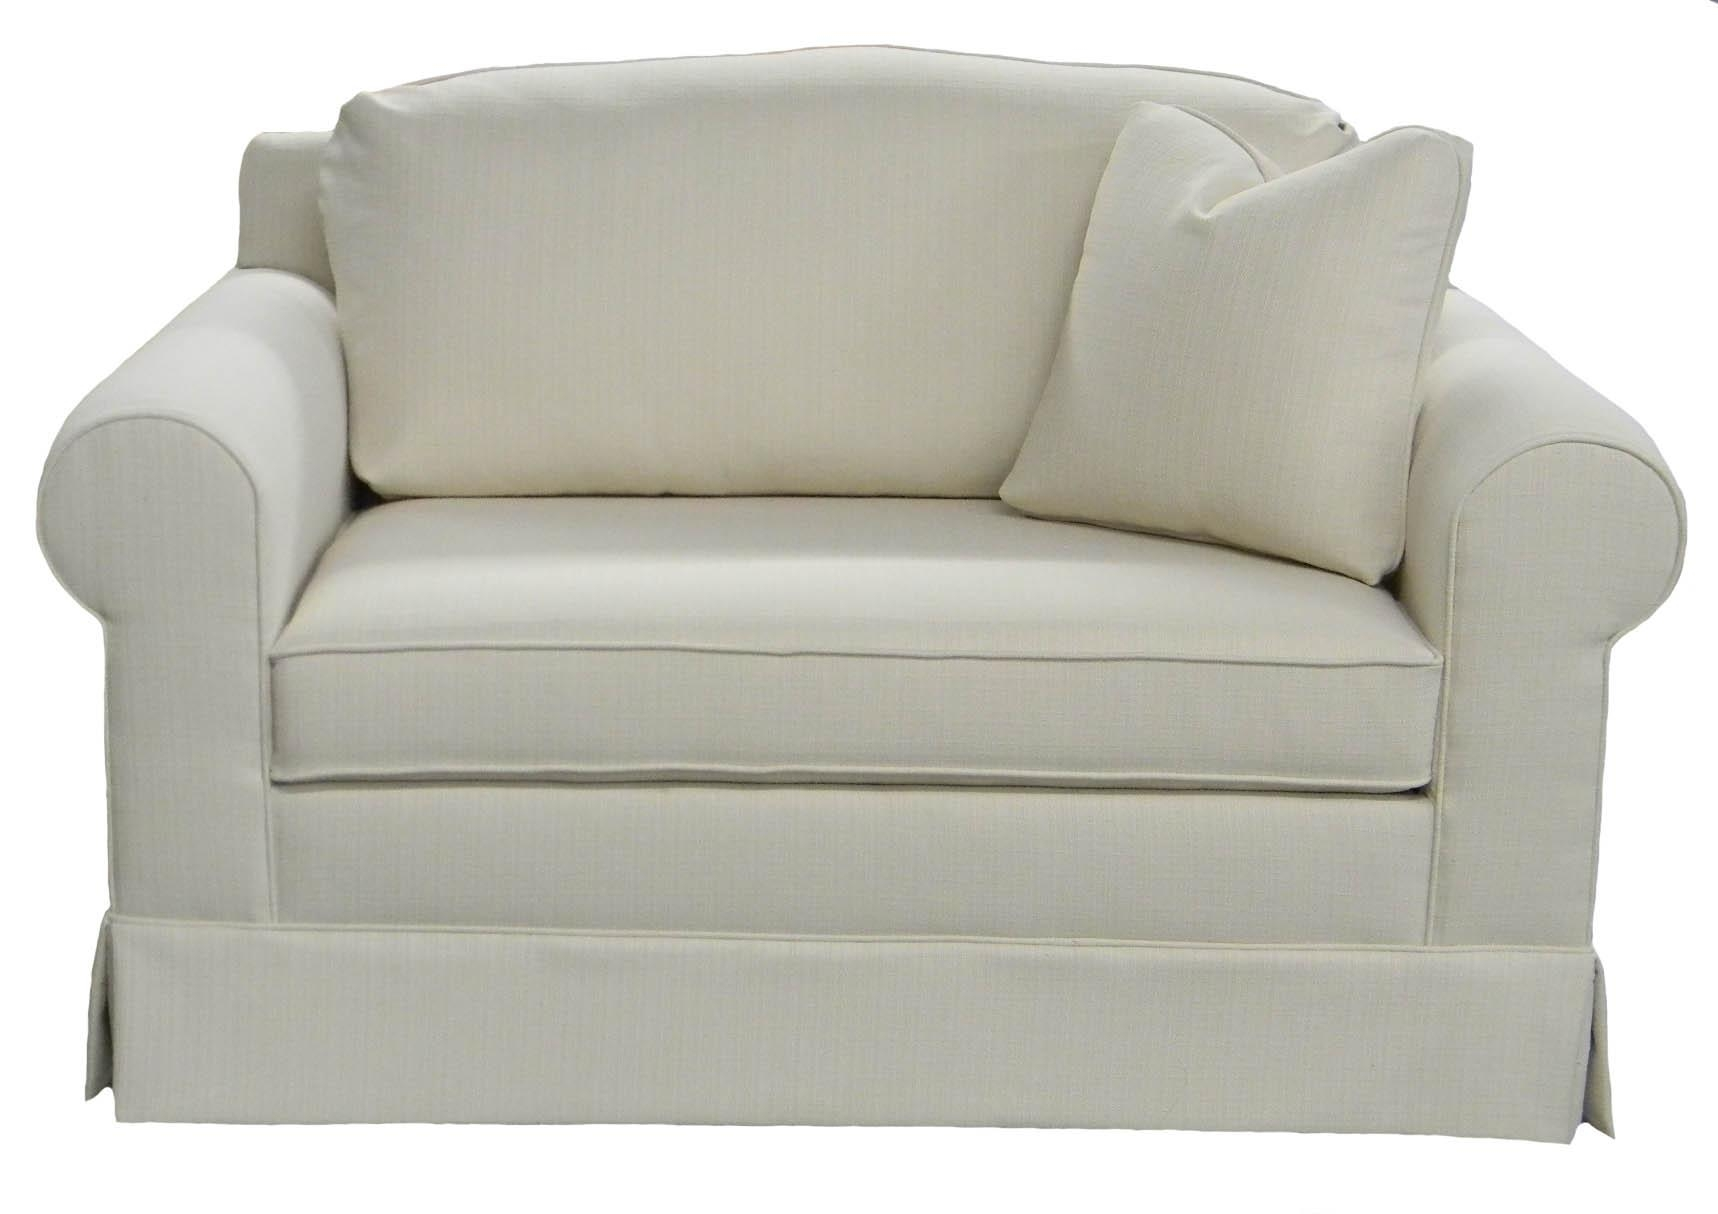 Furniture: Oversized Chair Slipcover | Sure Fit Sofa Covers With Covers For Sofas (View 19 of 20)